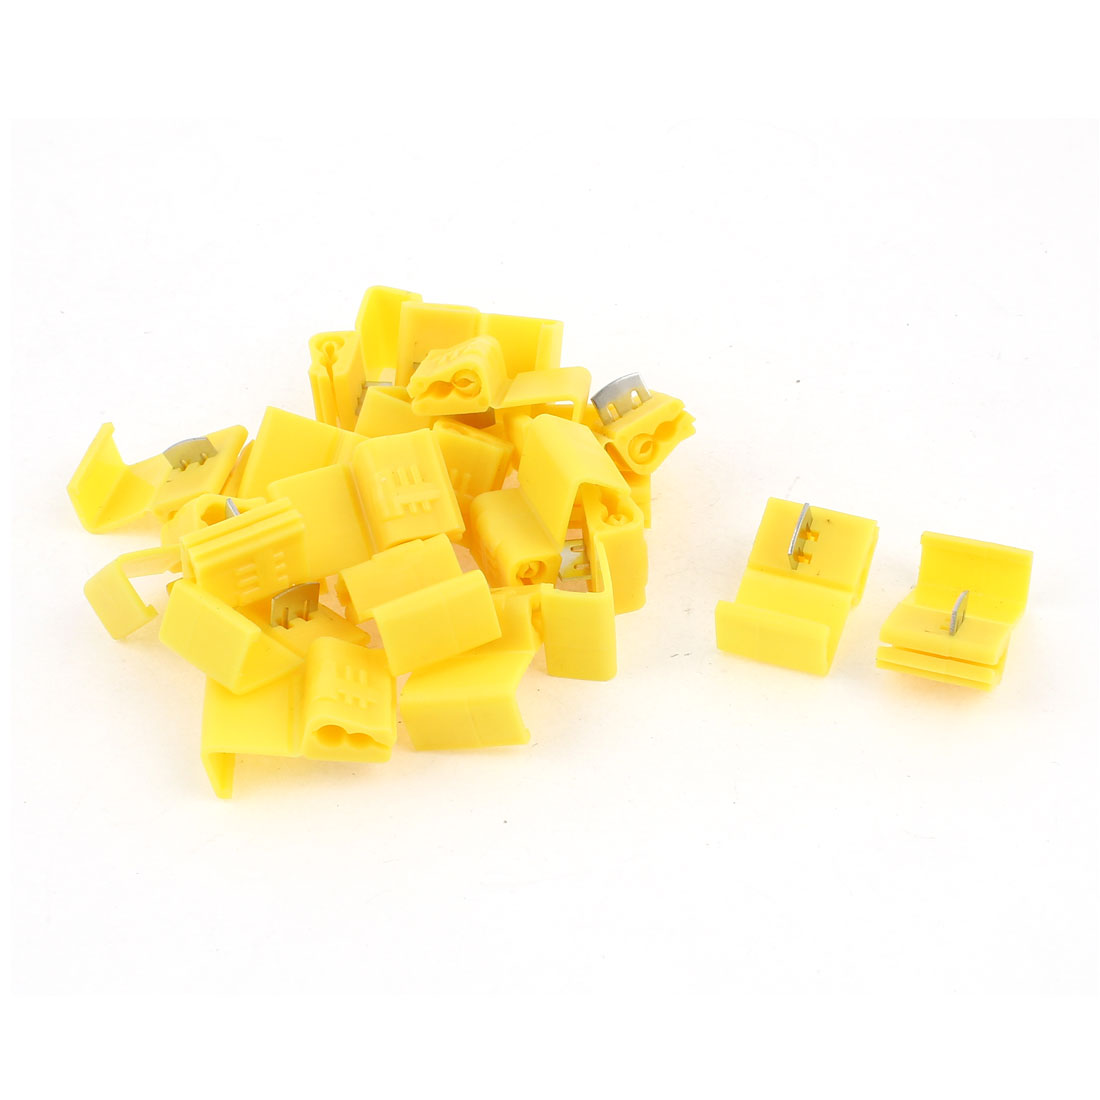 20 Pcs Yellow Plastic 2 Holes Adjustable Wire Cord Cable Clips Organizer